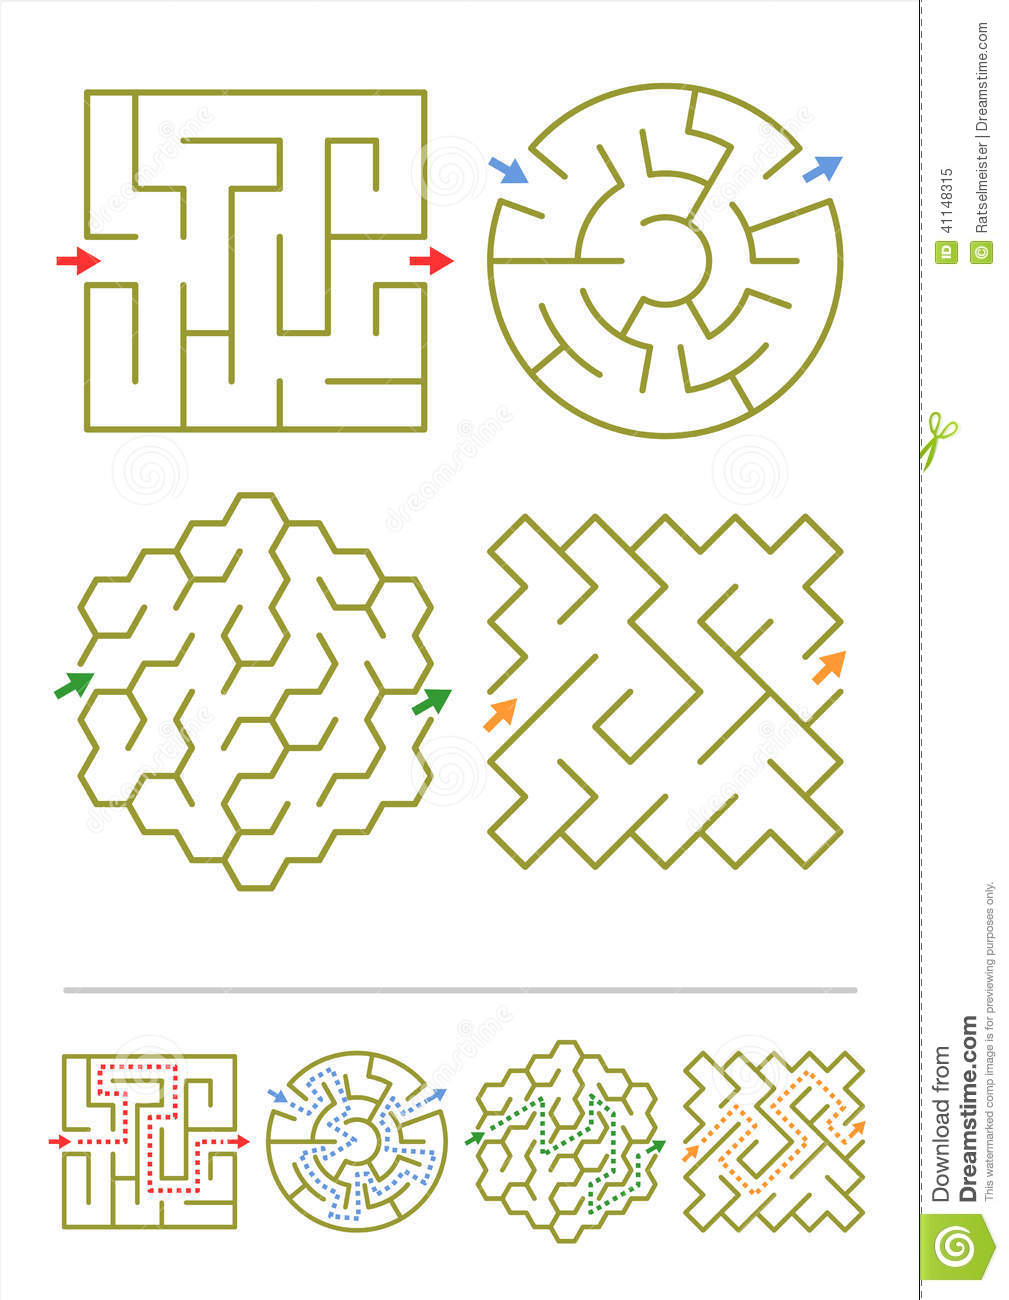 Four Maze Games With Answers Stock Vector - Image: 41148315